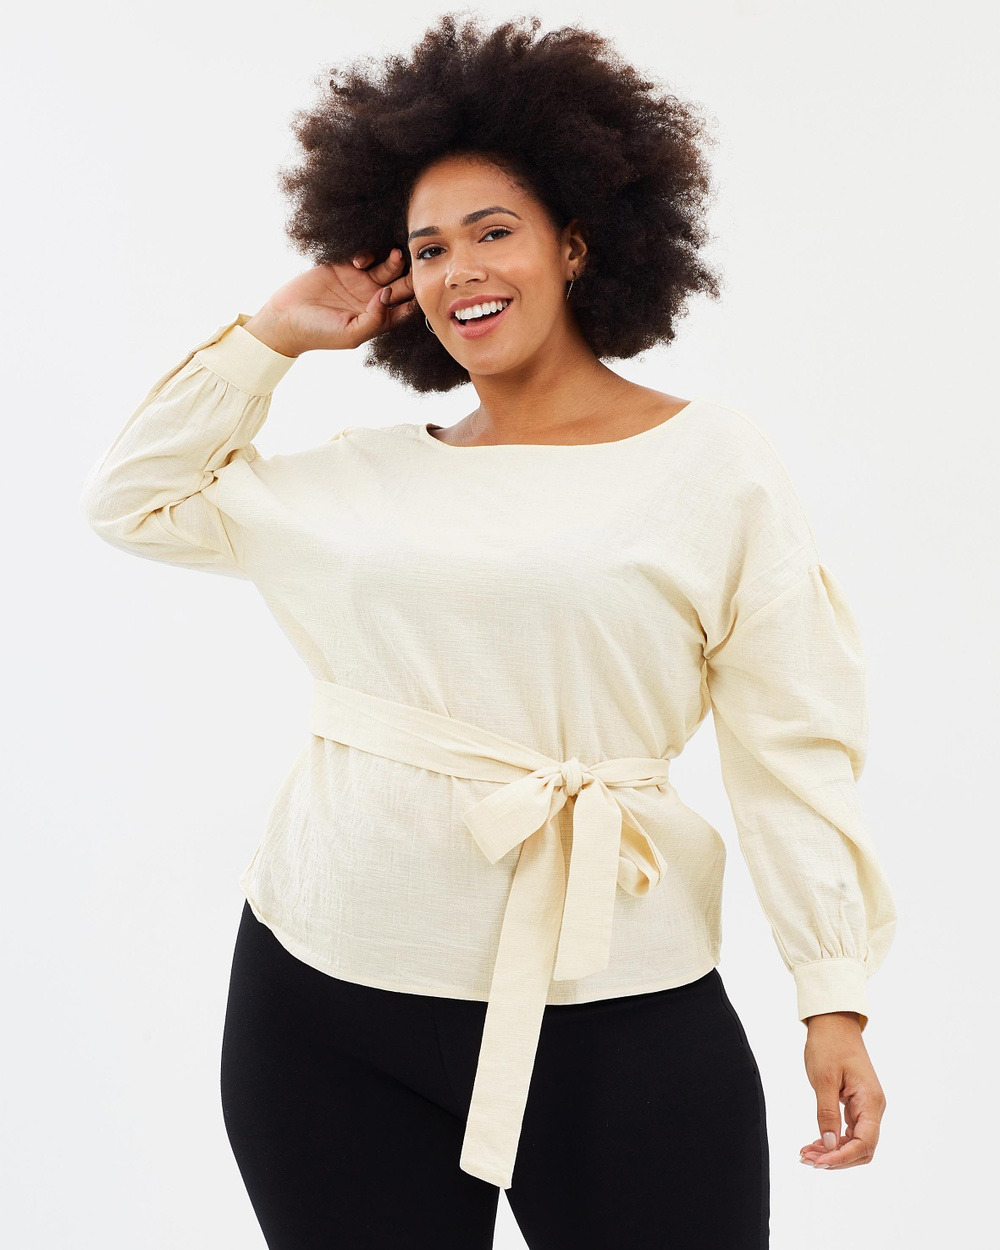 Atmos & Here Curvy ICONIC EXCLUSIVE Aicha Cotton Waist Tie Top Tops Oatmeal ICONIC EXCLUSIVE Aicha Cotton Waist Tie Top